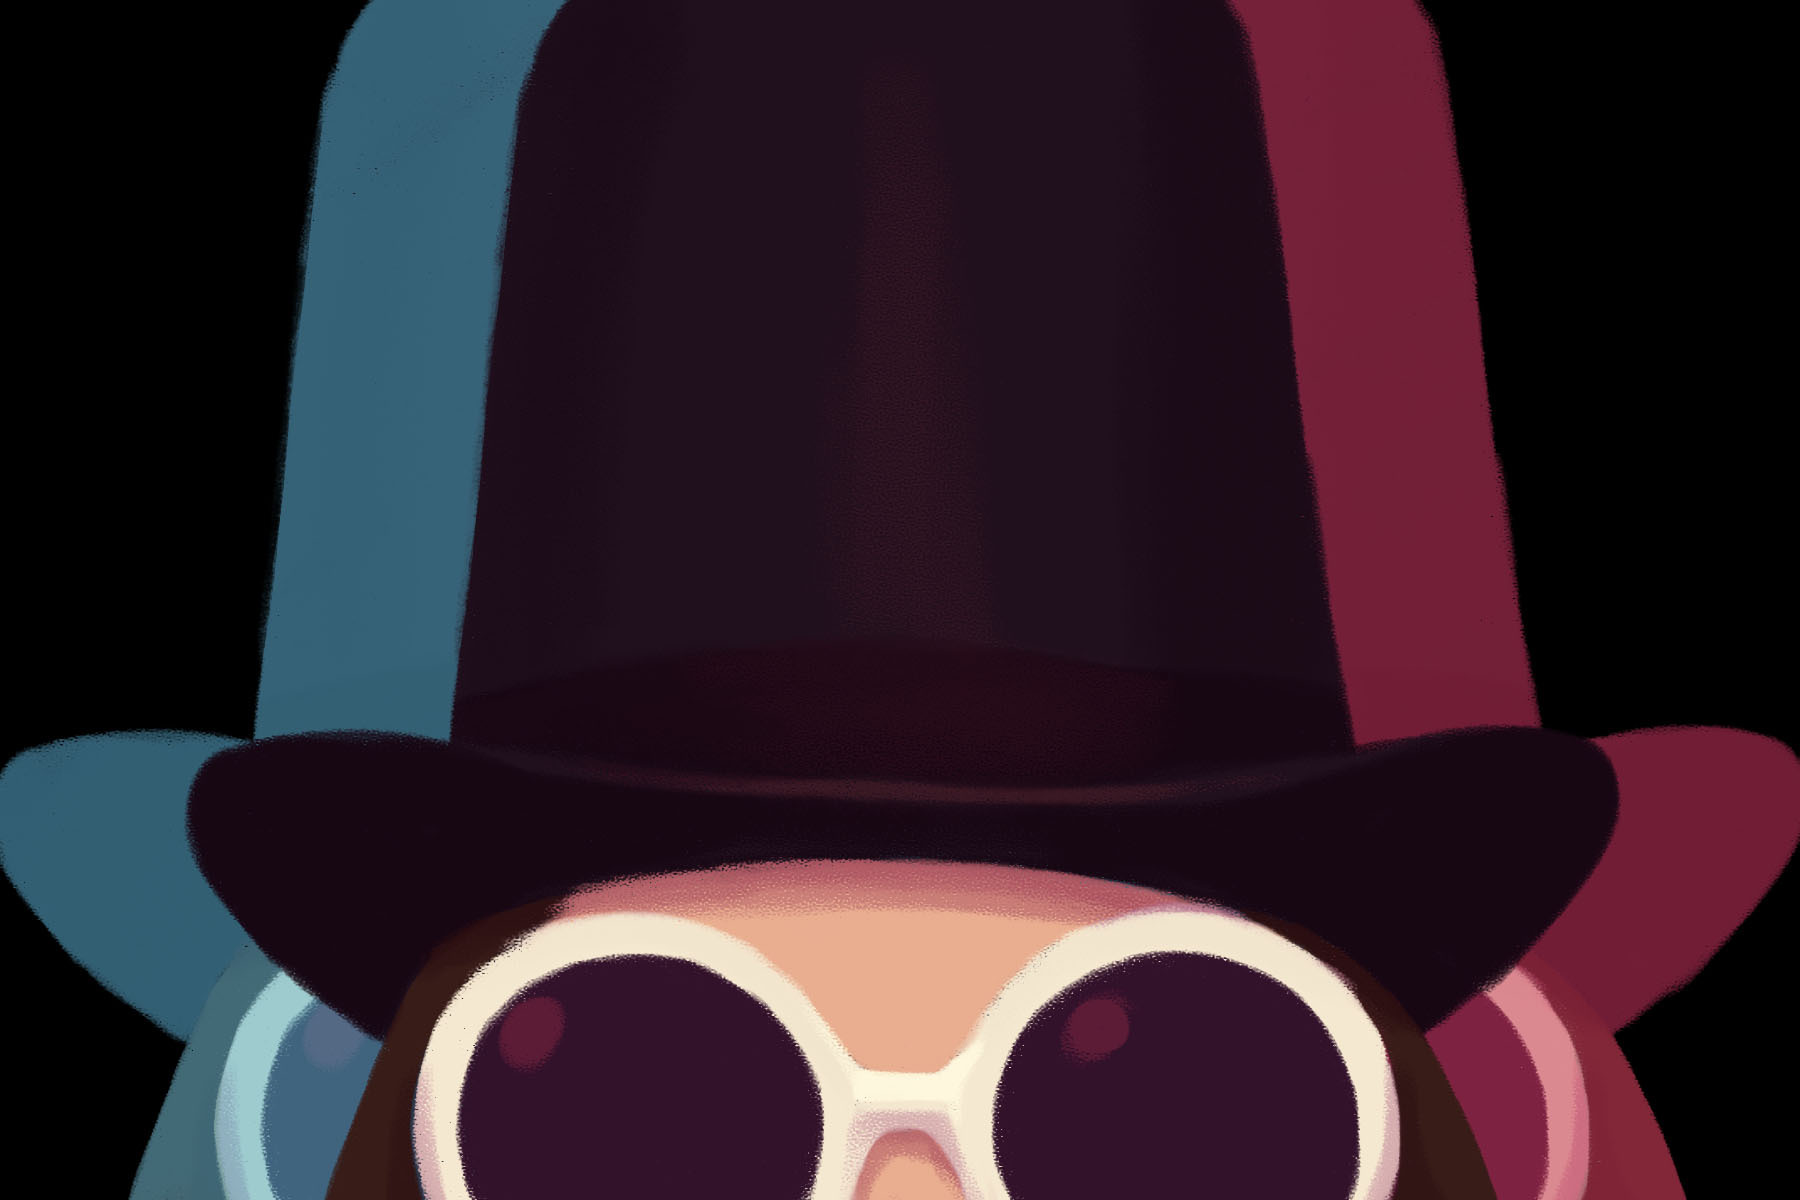 Illustration of popular television figure, Willy Wonka.